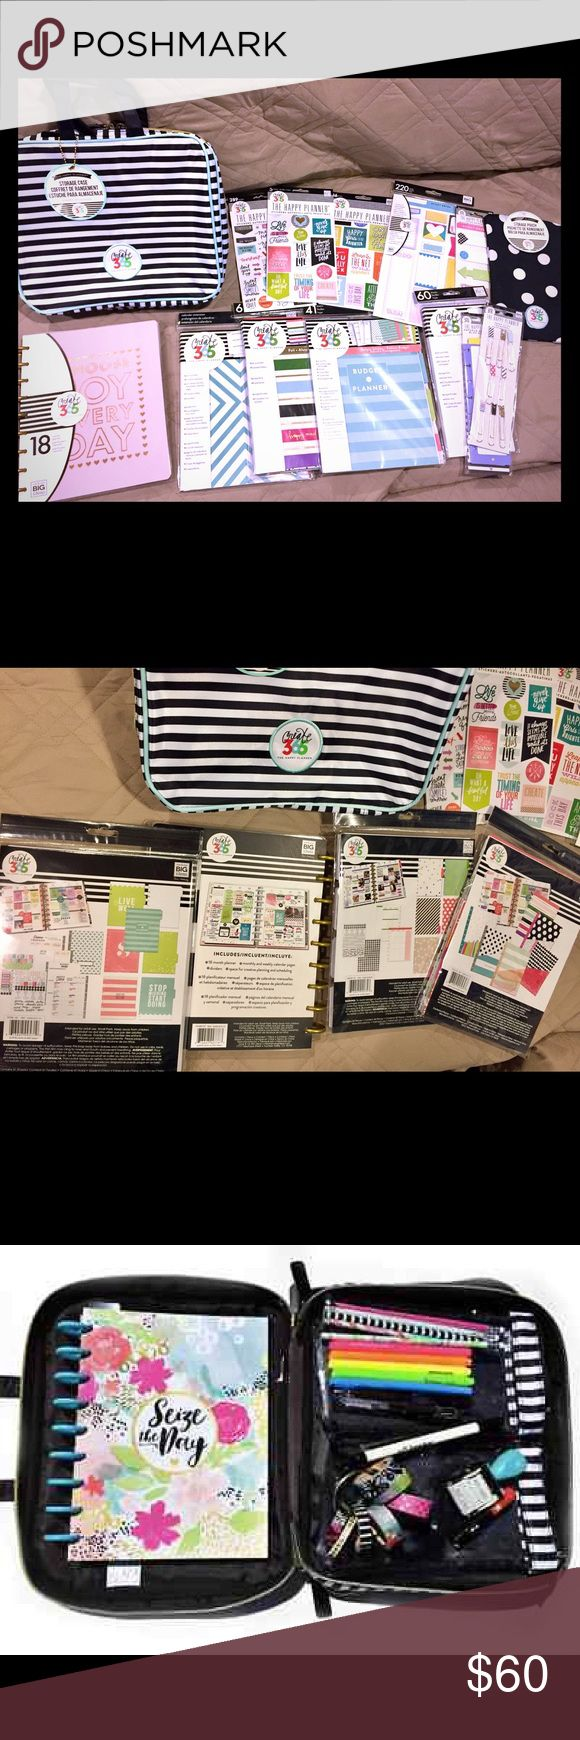 The Happy Planner huge bundle! Listing is for everything pictured! Brand new 18 month Planner, storage case, folders, stickers, magnets, sticky notes, budget extension pack and more! This bundle value is over $150! Accessories